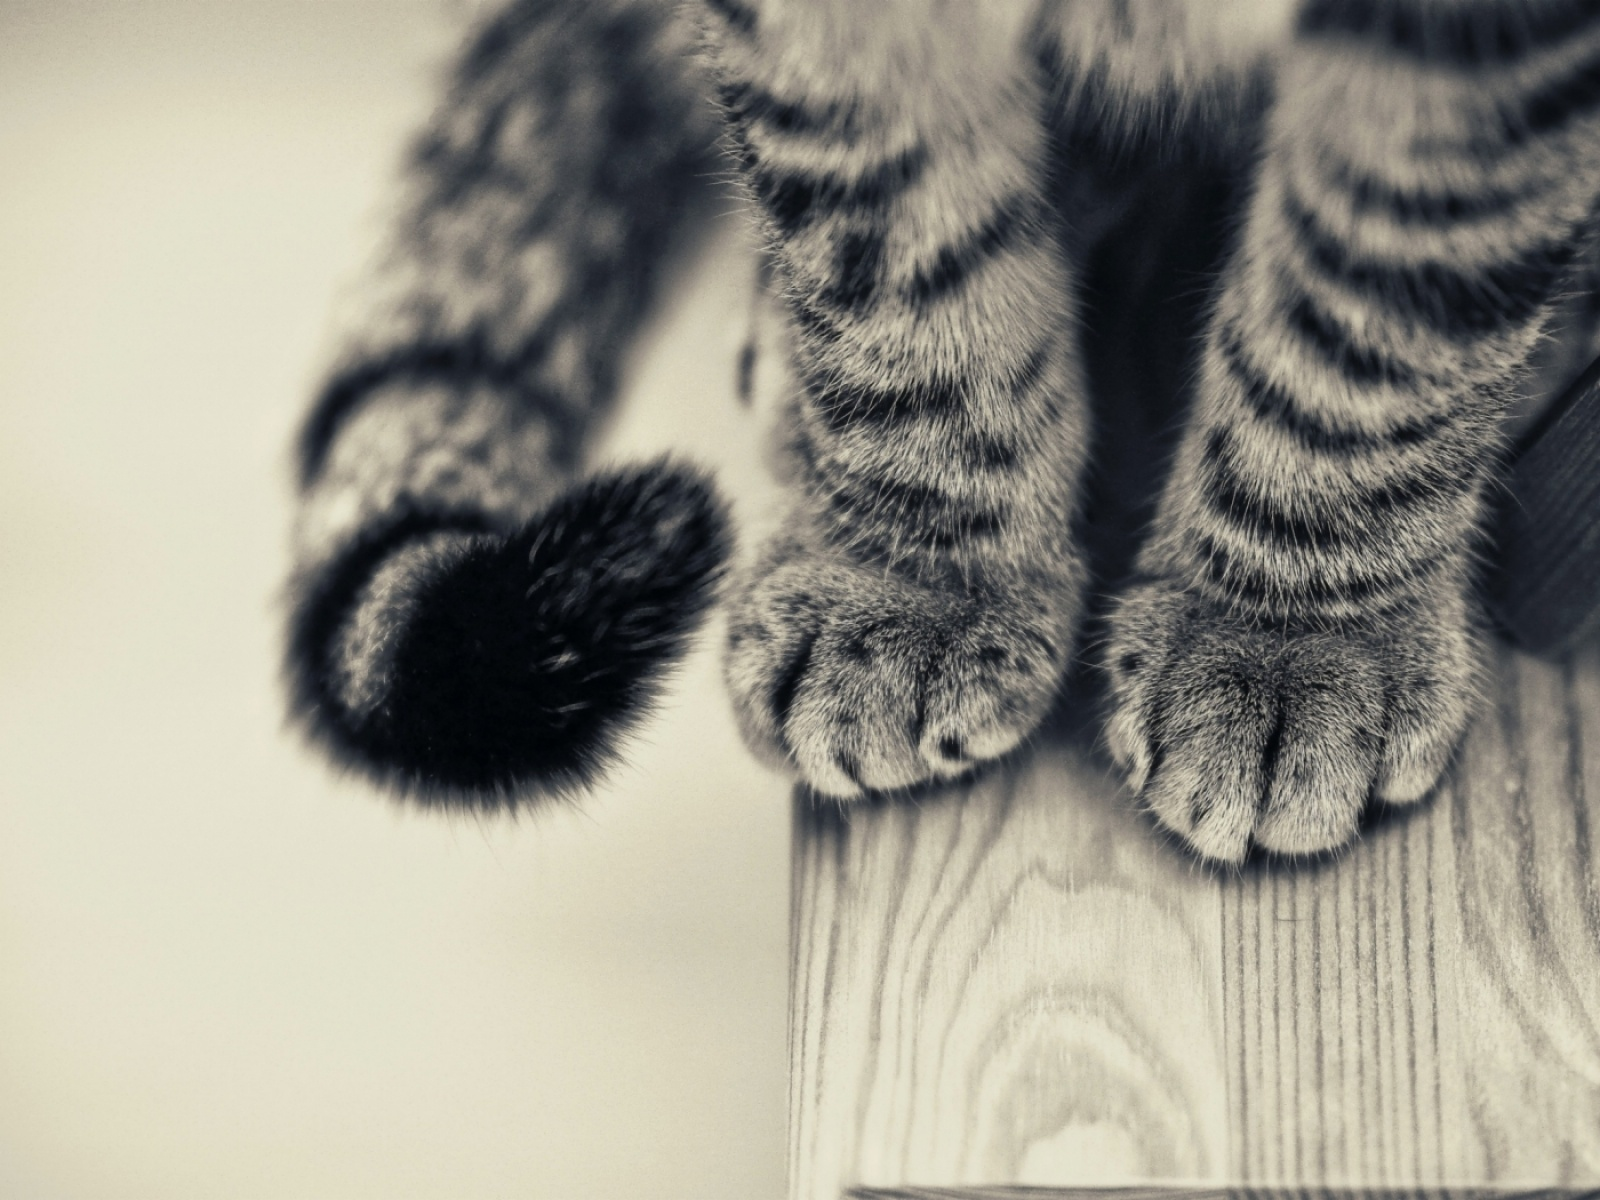 click to free download the wallpaper--Cute Animals Pic, Cat Paws, Soft and Nice-Looking, a Black and Gray Tale 1600X1200 free wallpaper download